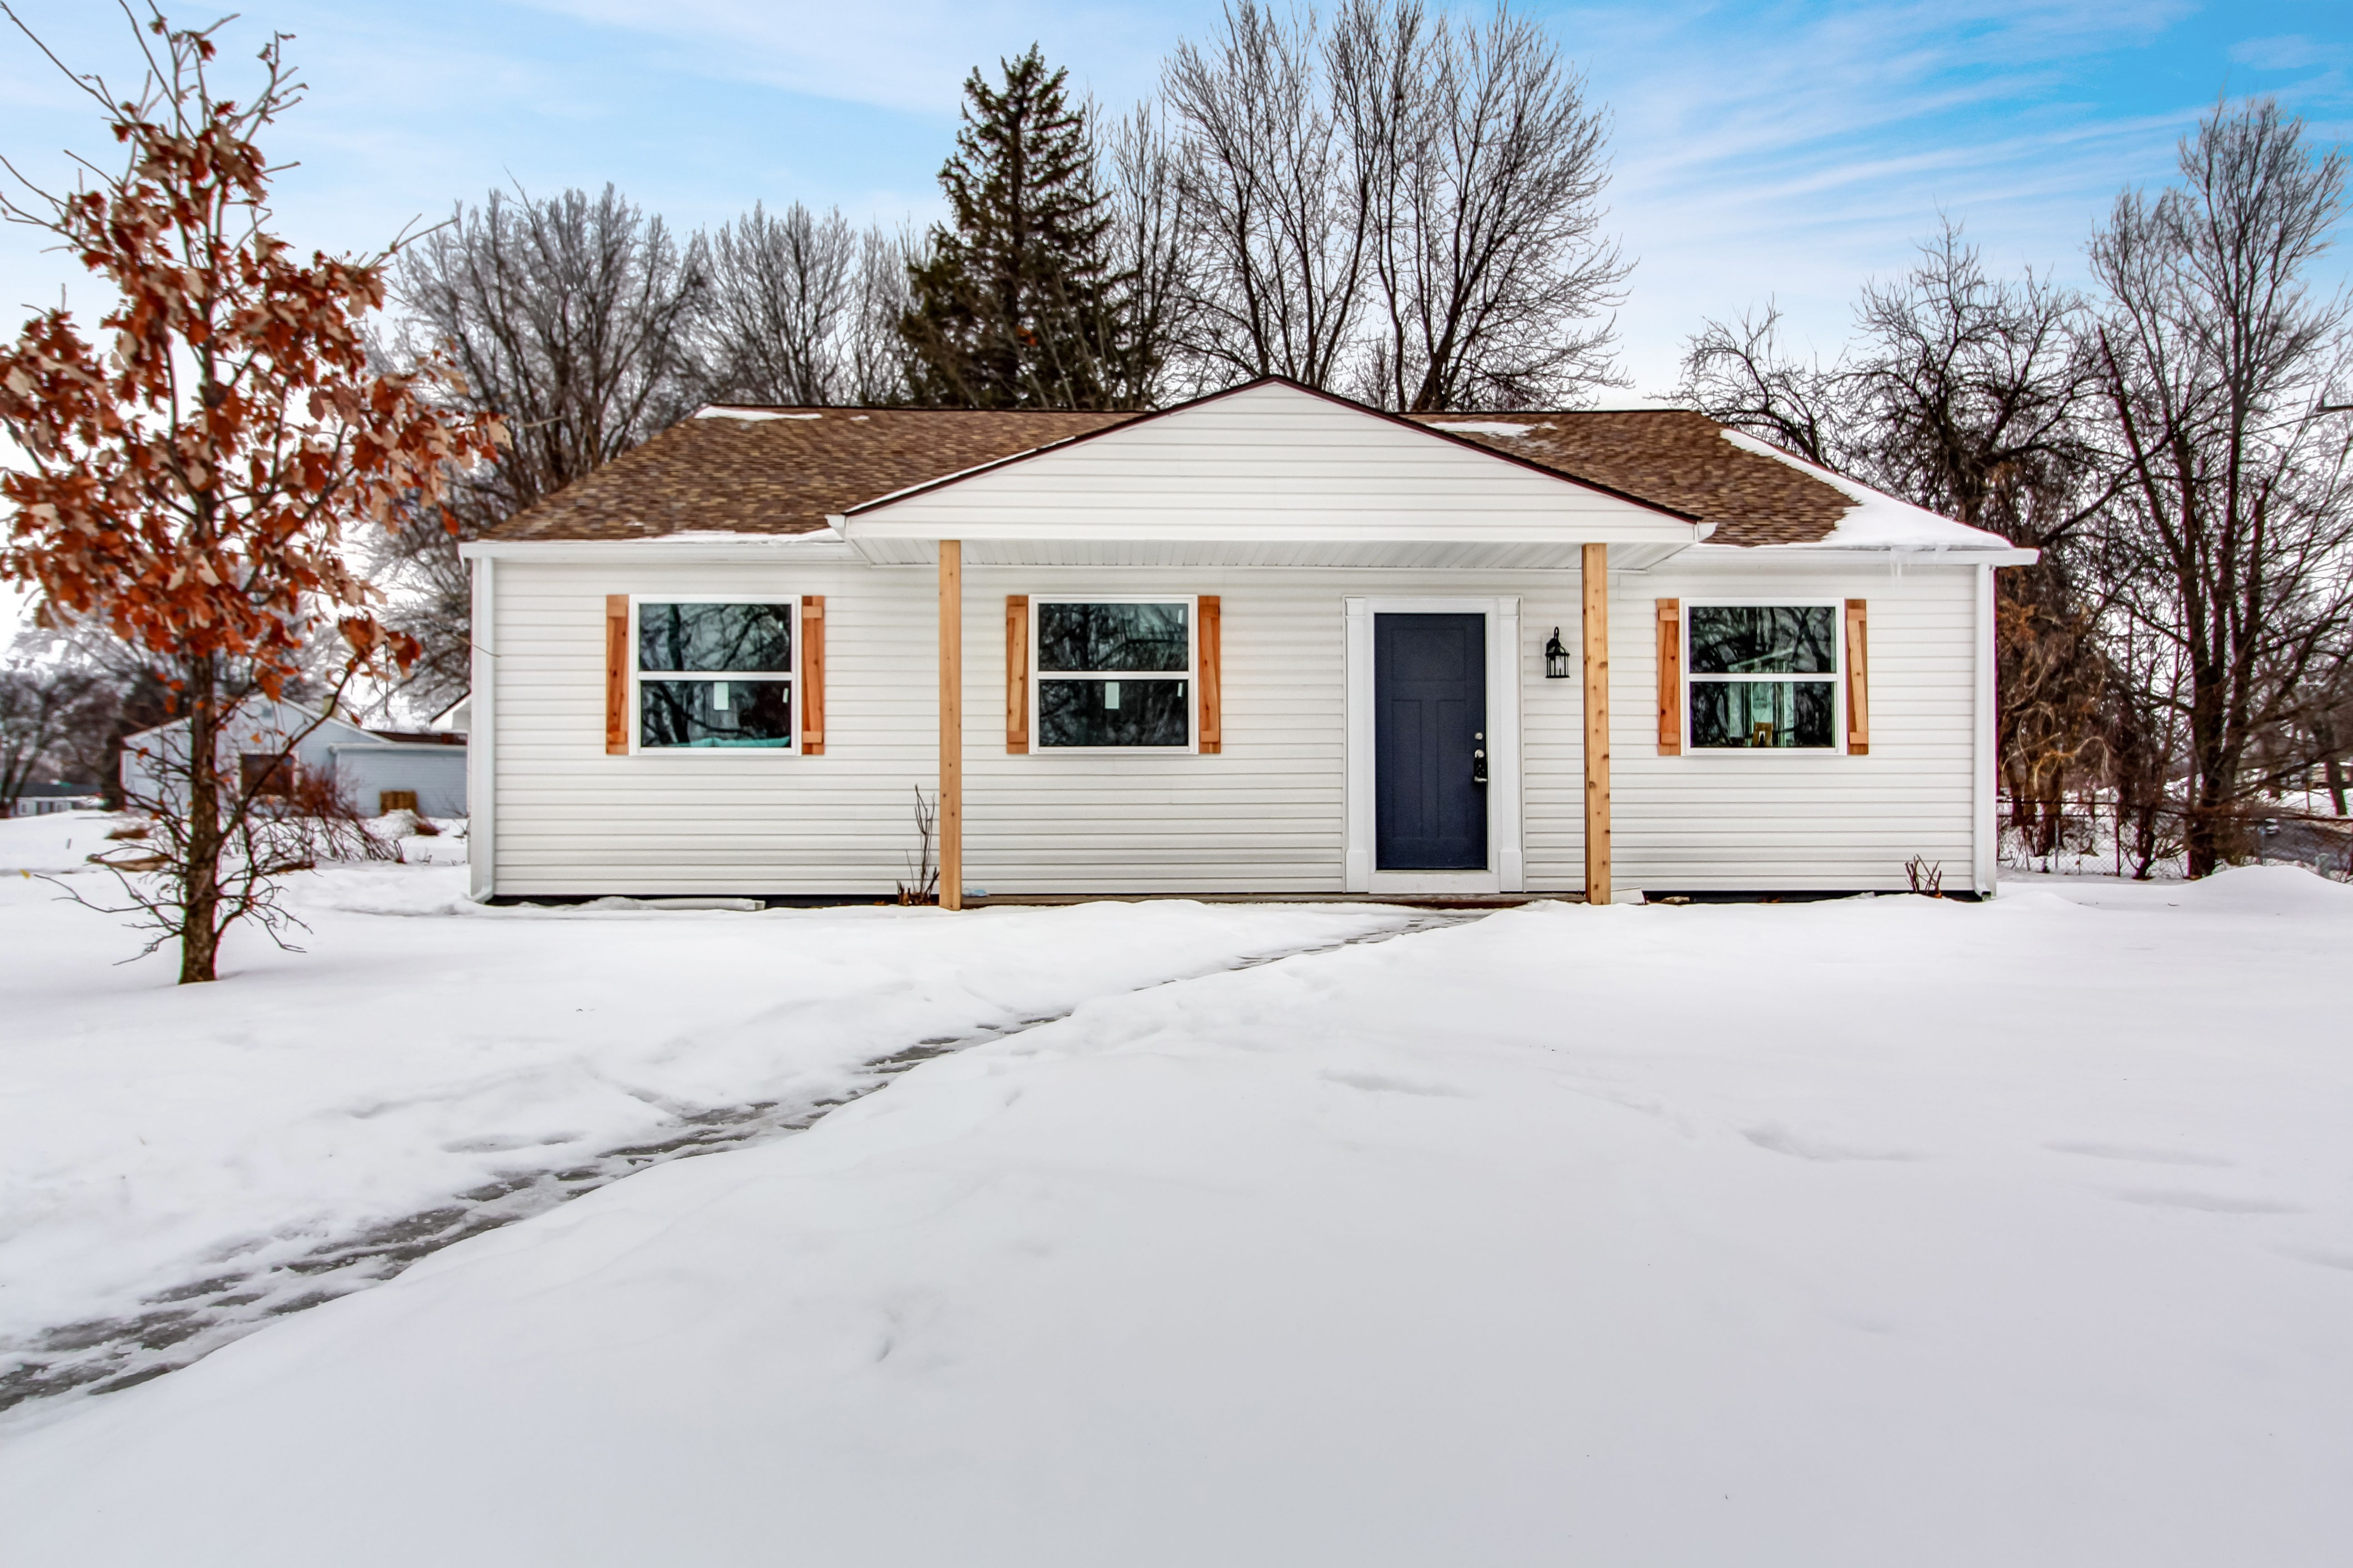 301 lincoln road marquette heights il 61554 buying a home rh pinterest com